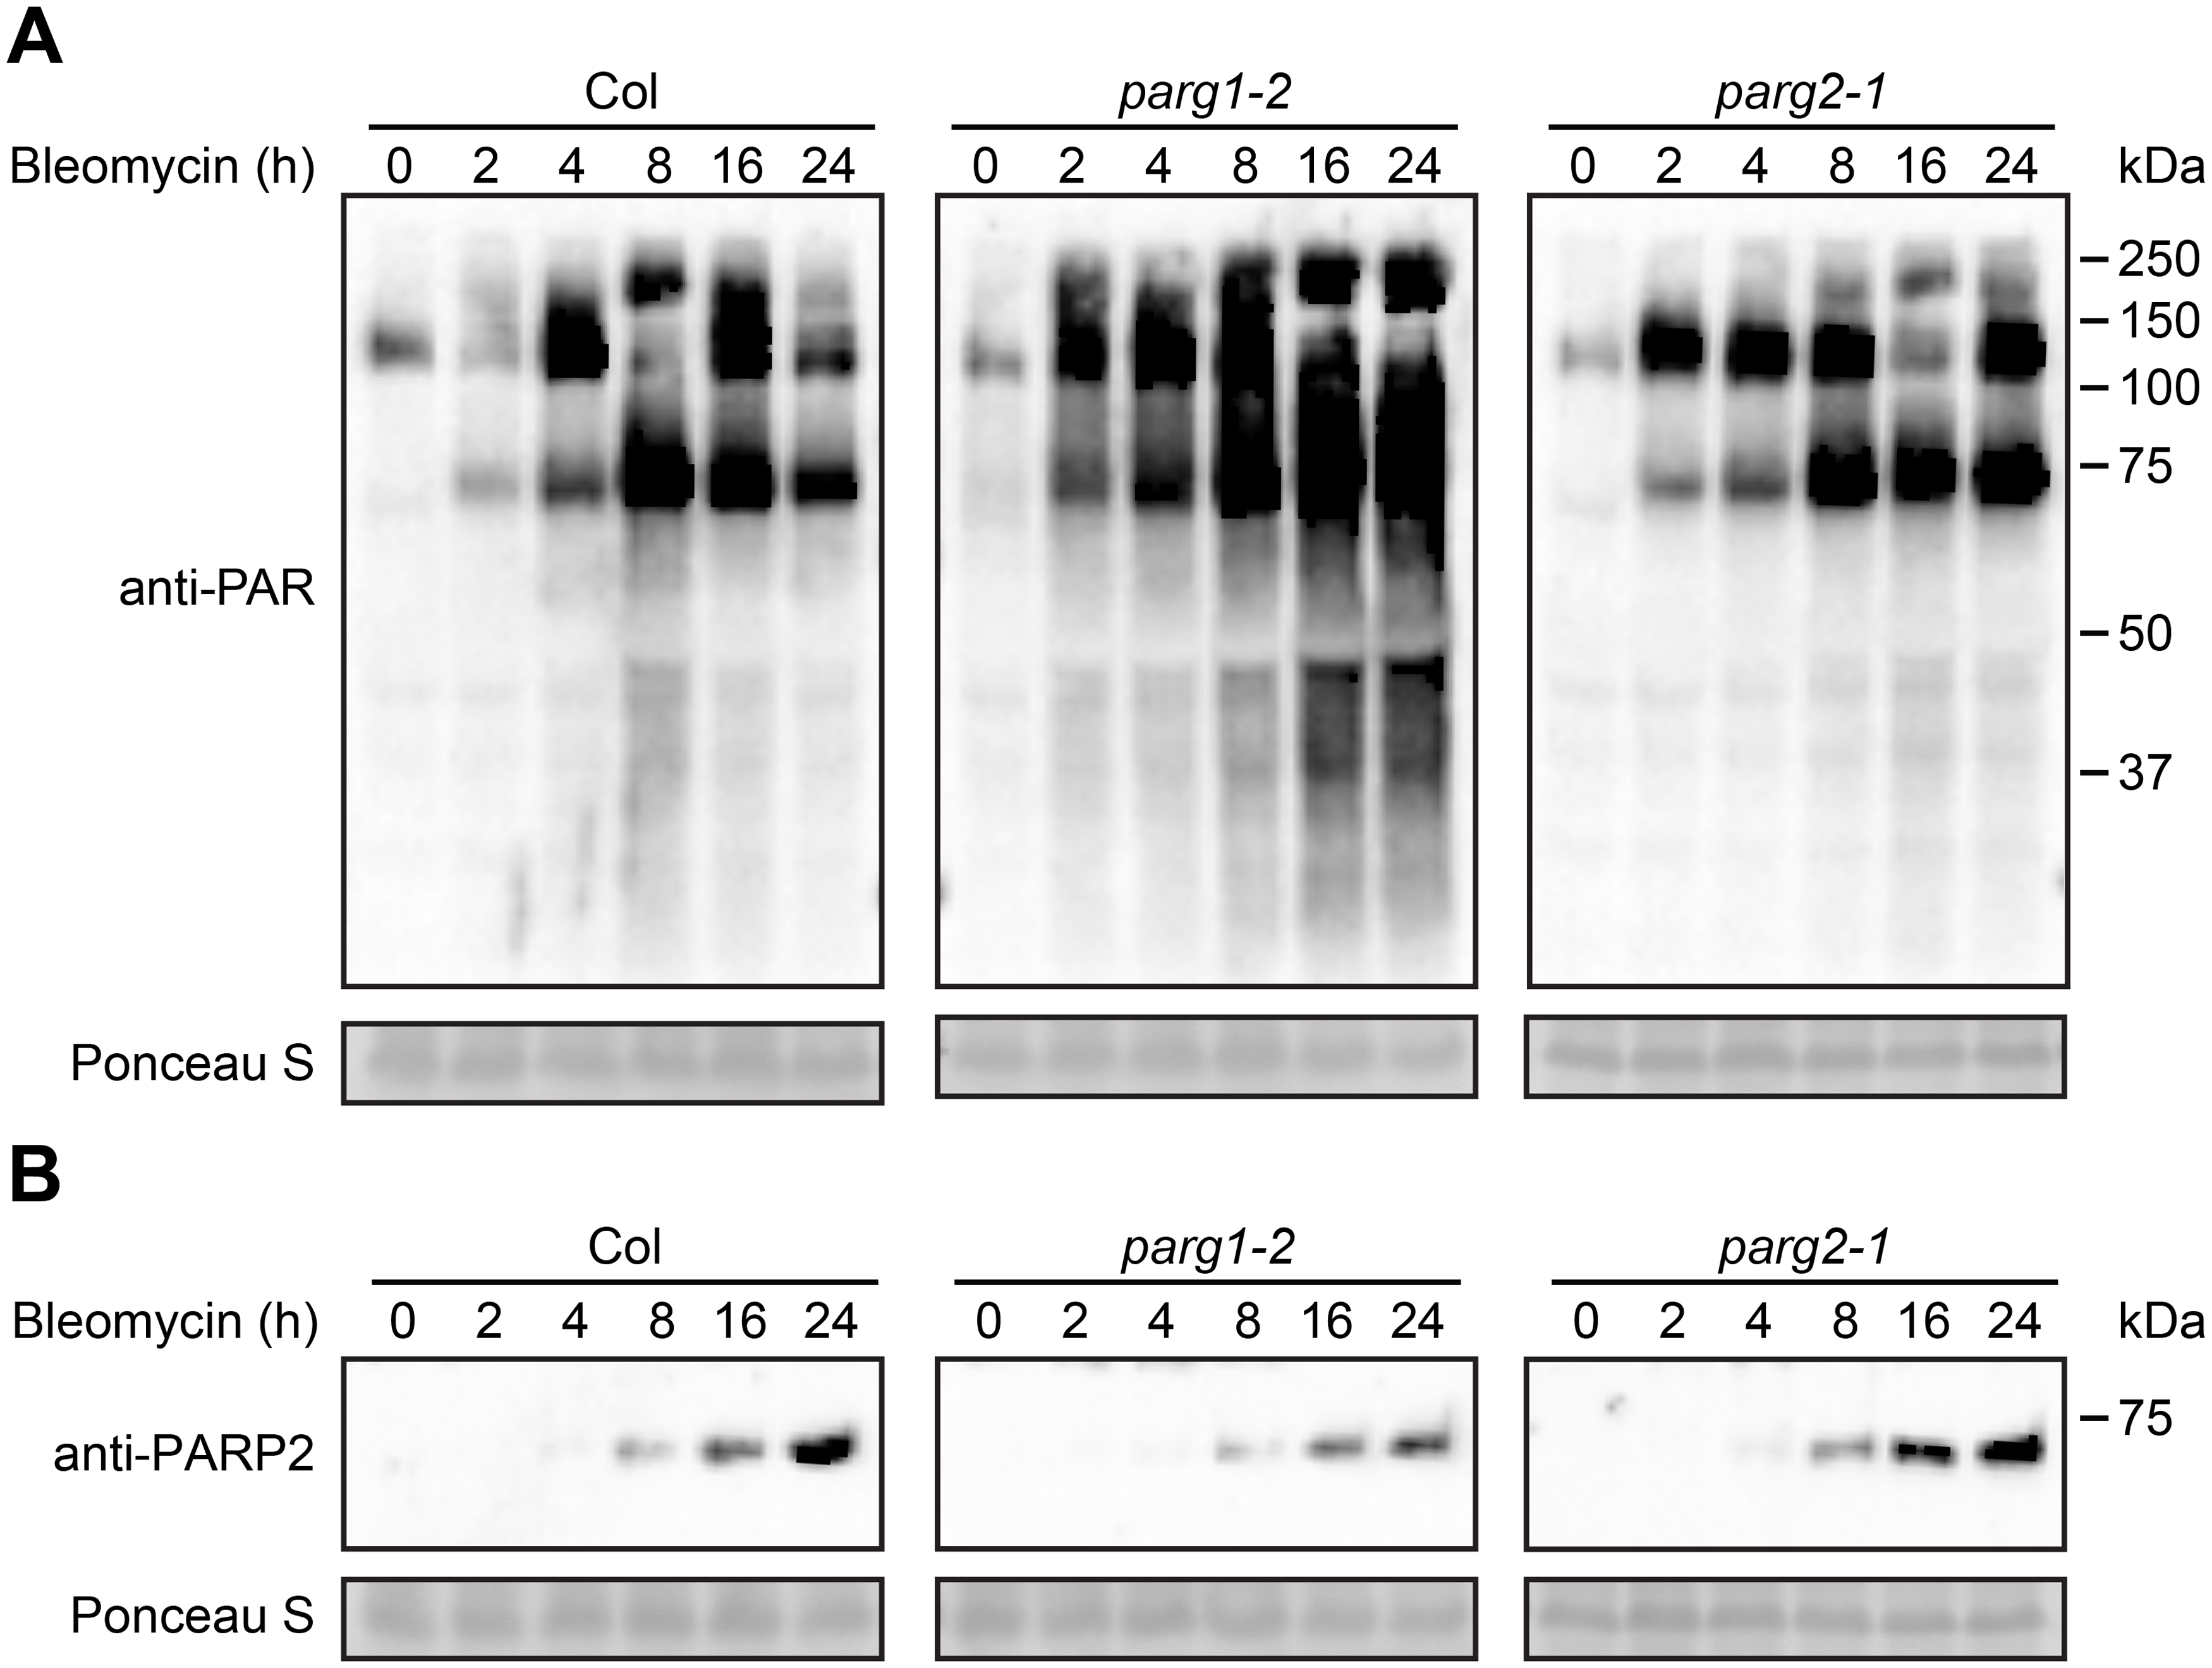 PARG1 is more active than PARG2 in removal of poly(ADP-ribosyl)ation after bleomycin treatment.